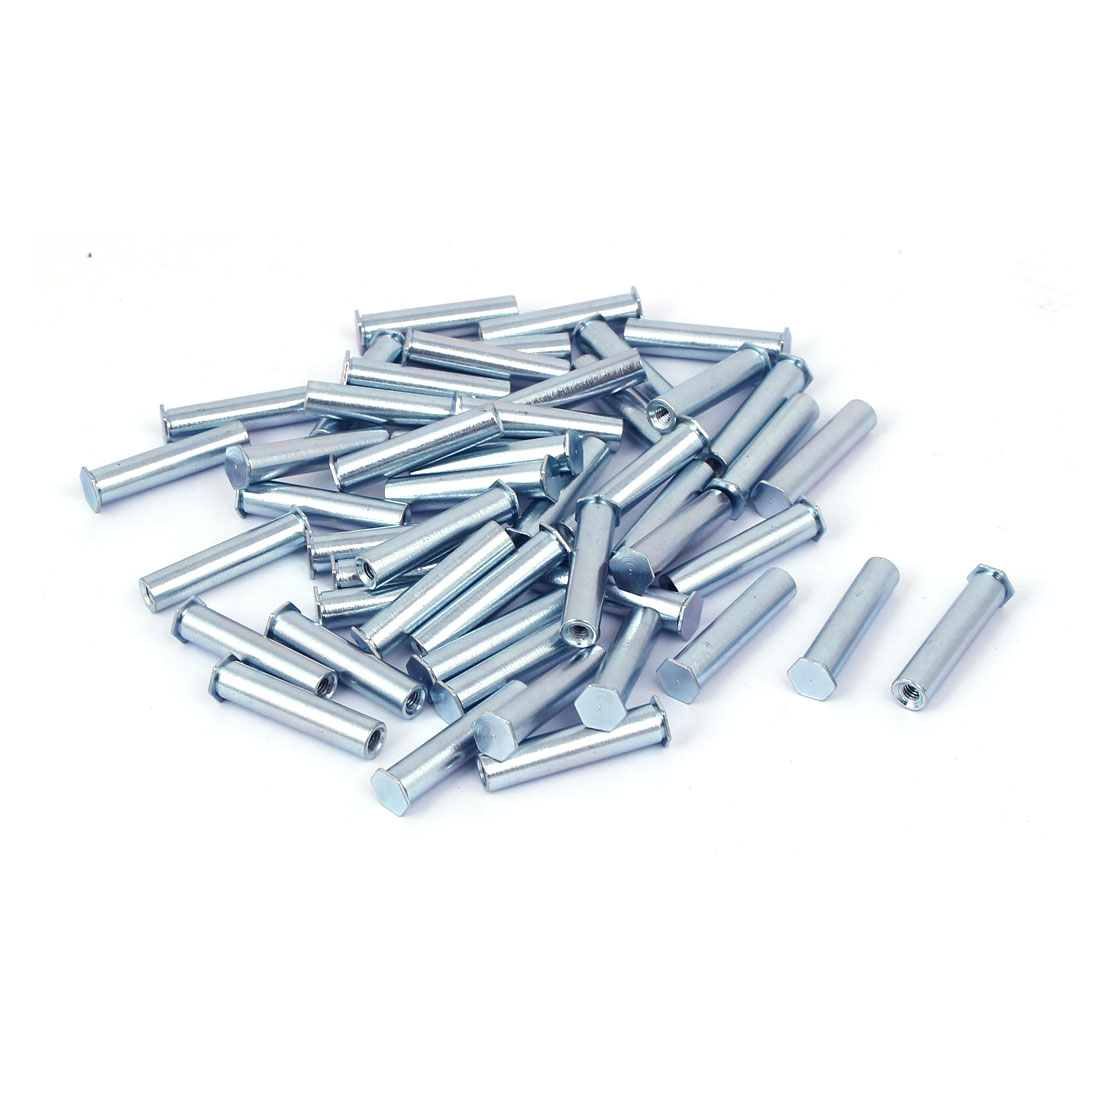 M3 x 25mm Full Thread Hexagon Head Blind Hole Self Clinching Standoffs 50 Pcs